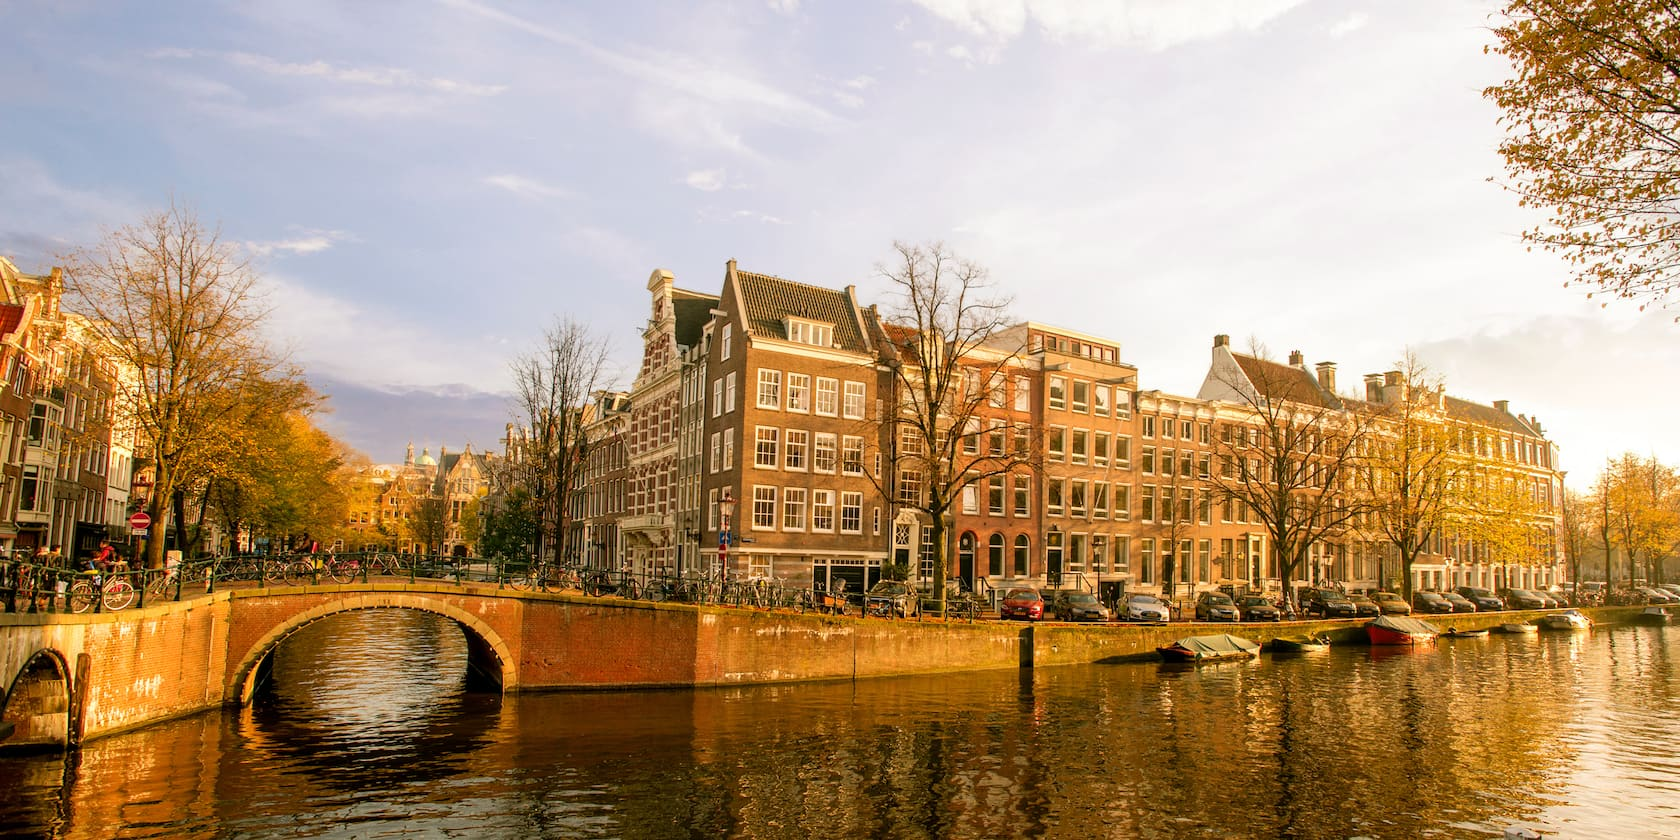 A stone bridge lined with bulidings spans a canal in Amsterdam